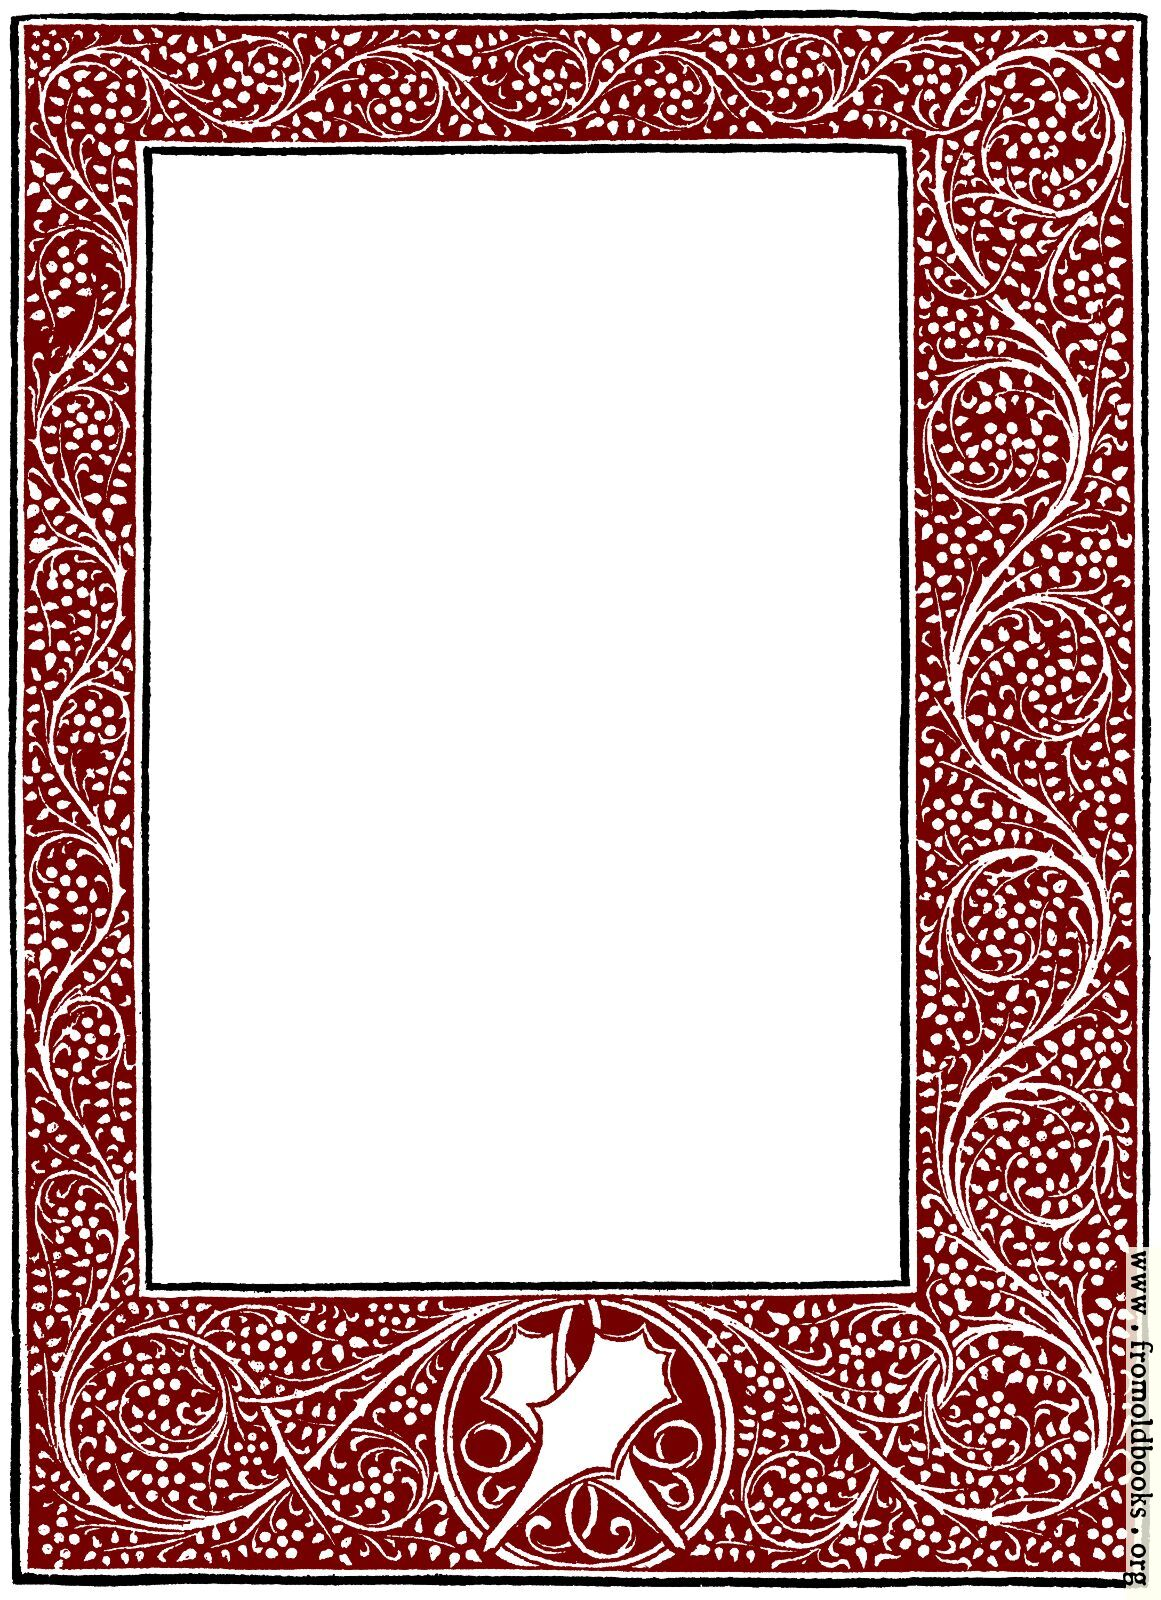 Full-page foliated border from 1478.